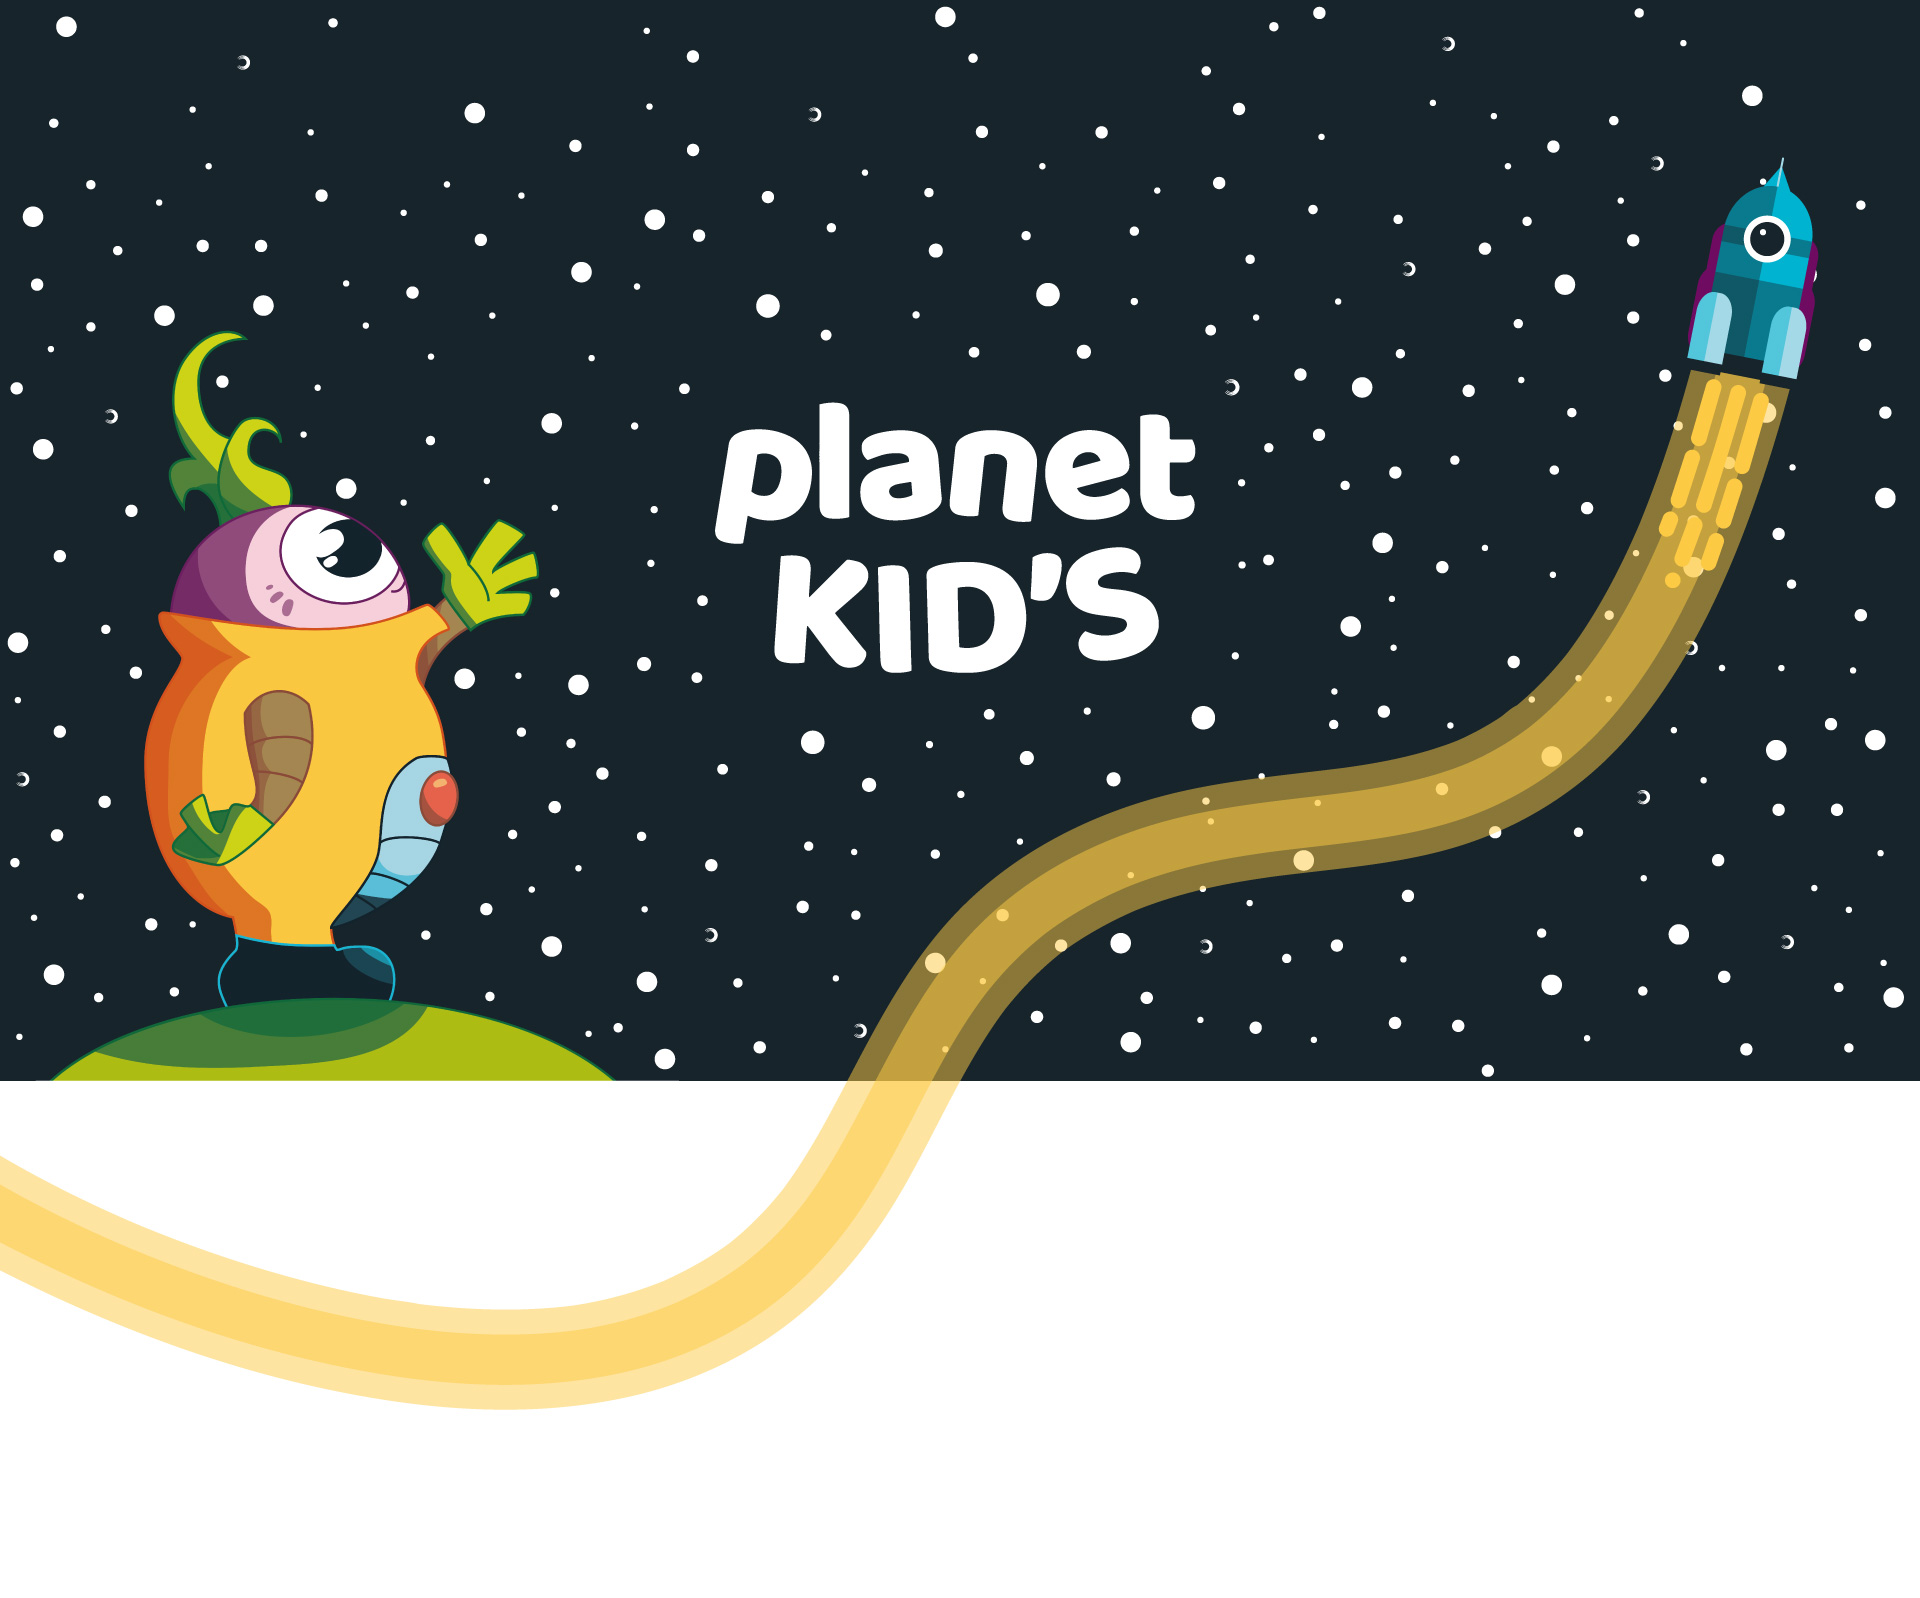 Planet kid's neoky despedida